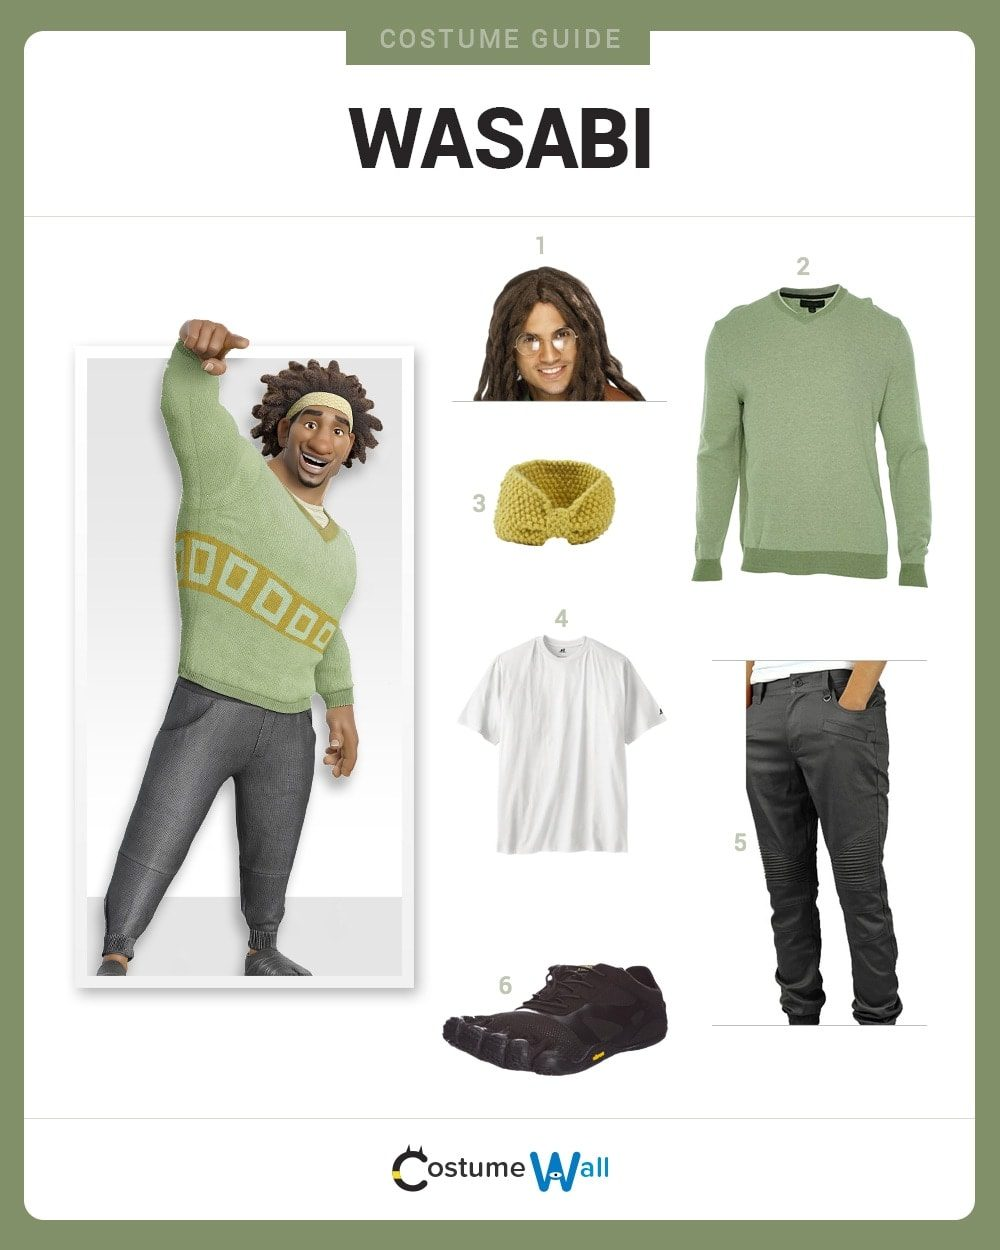 Wasabi Costume Guide